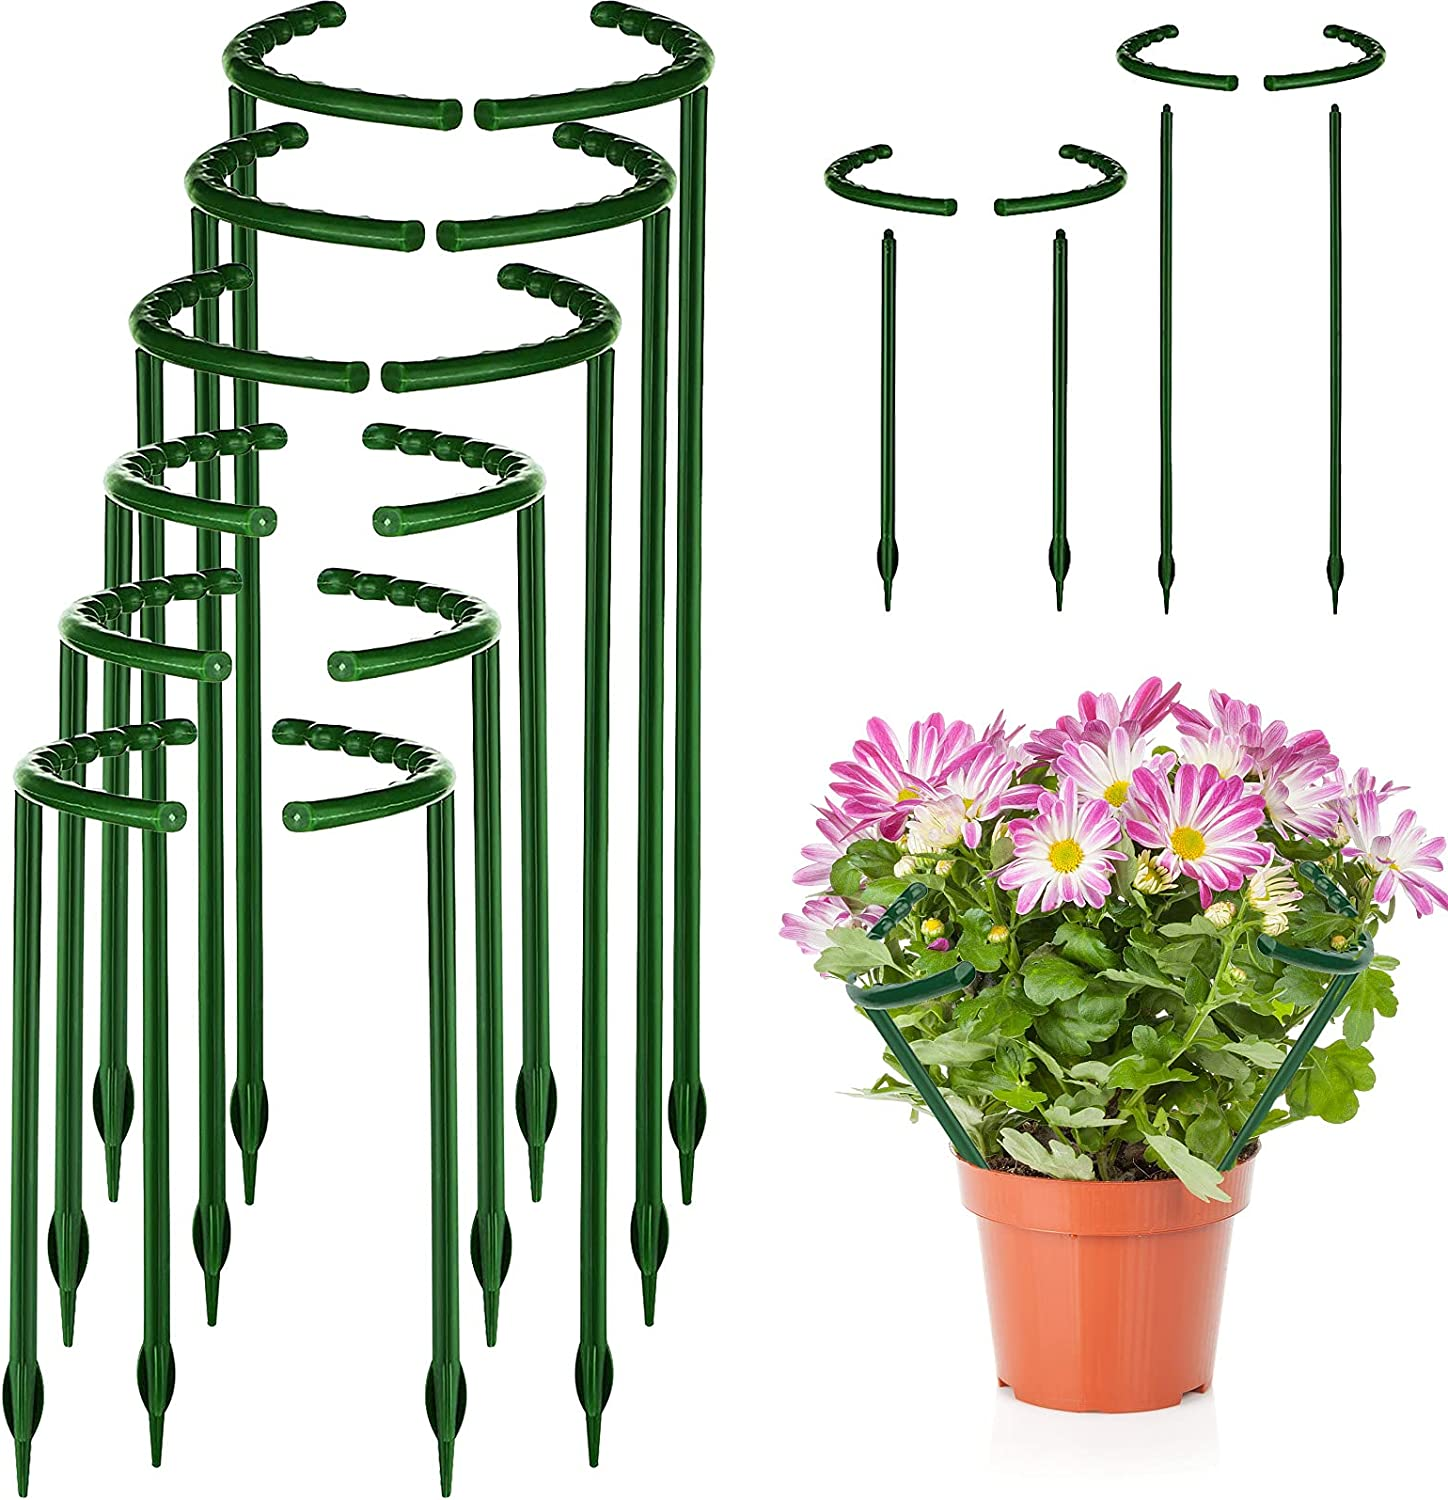 Broadsheet 12 Pack Plant Support Stakes, Half Round Plant Support Ring Garden Flower Plant Cage Holder, Outdoor Plant Support Stake for Peony, Rose Vegetable, Hydrangea, Vine